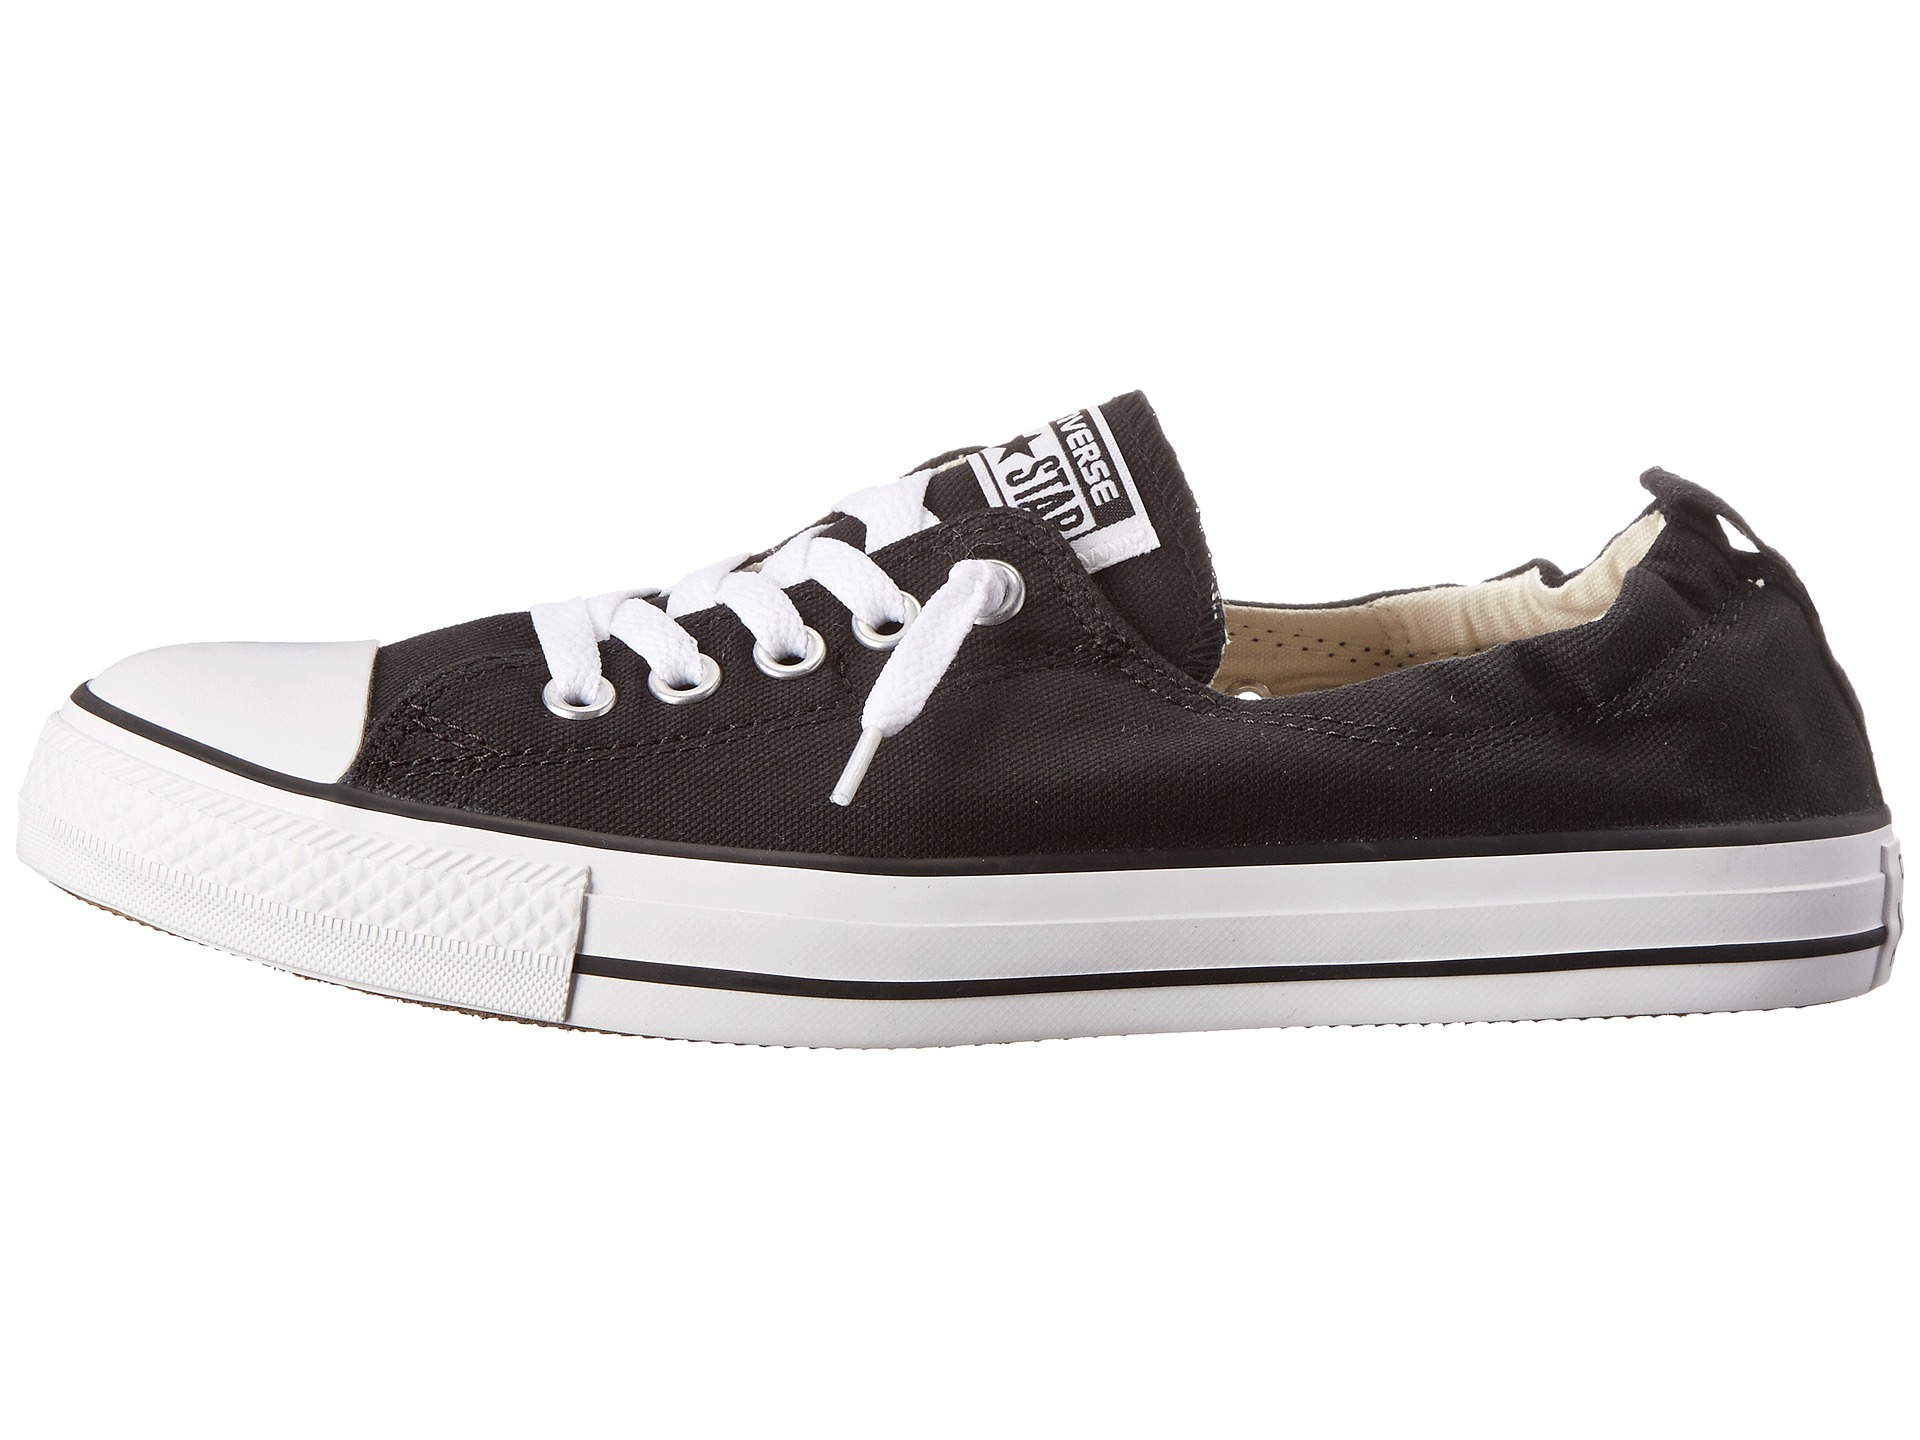 converse chuck taylor all star shoreline slip on ox. Black Bedroom Furniture Sets. Home Design Ideas